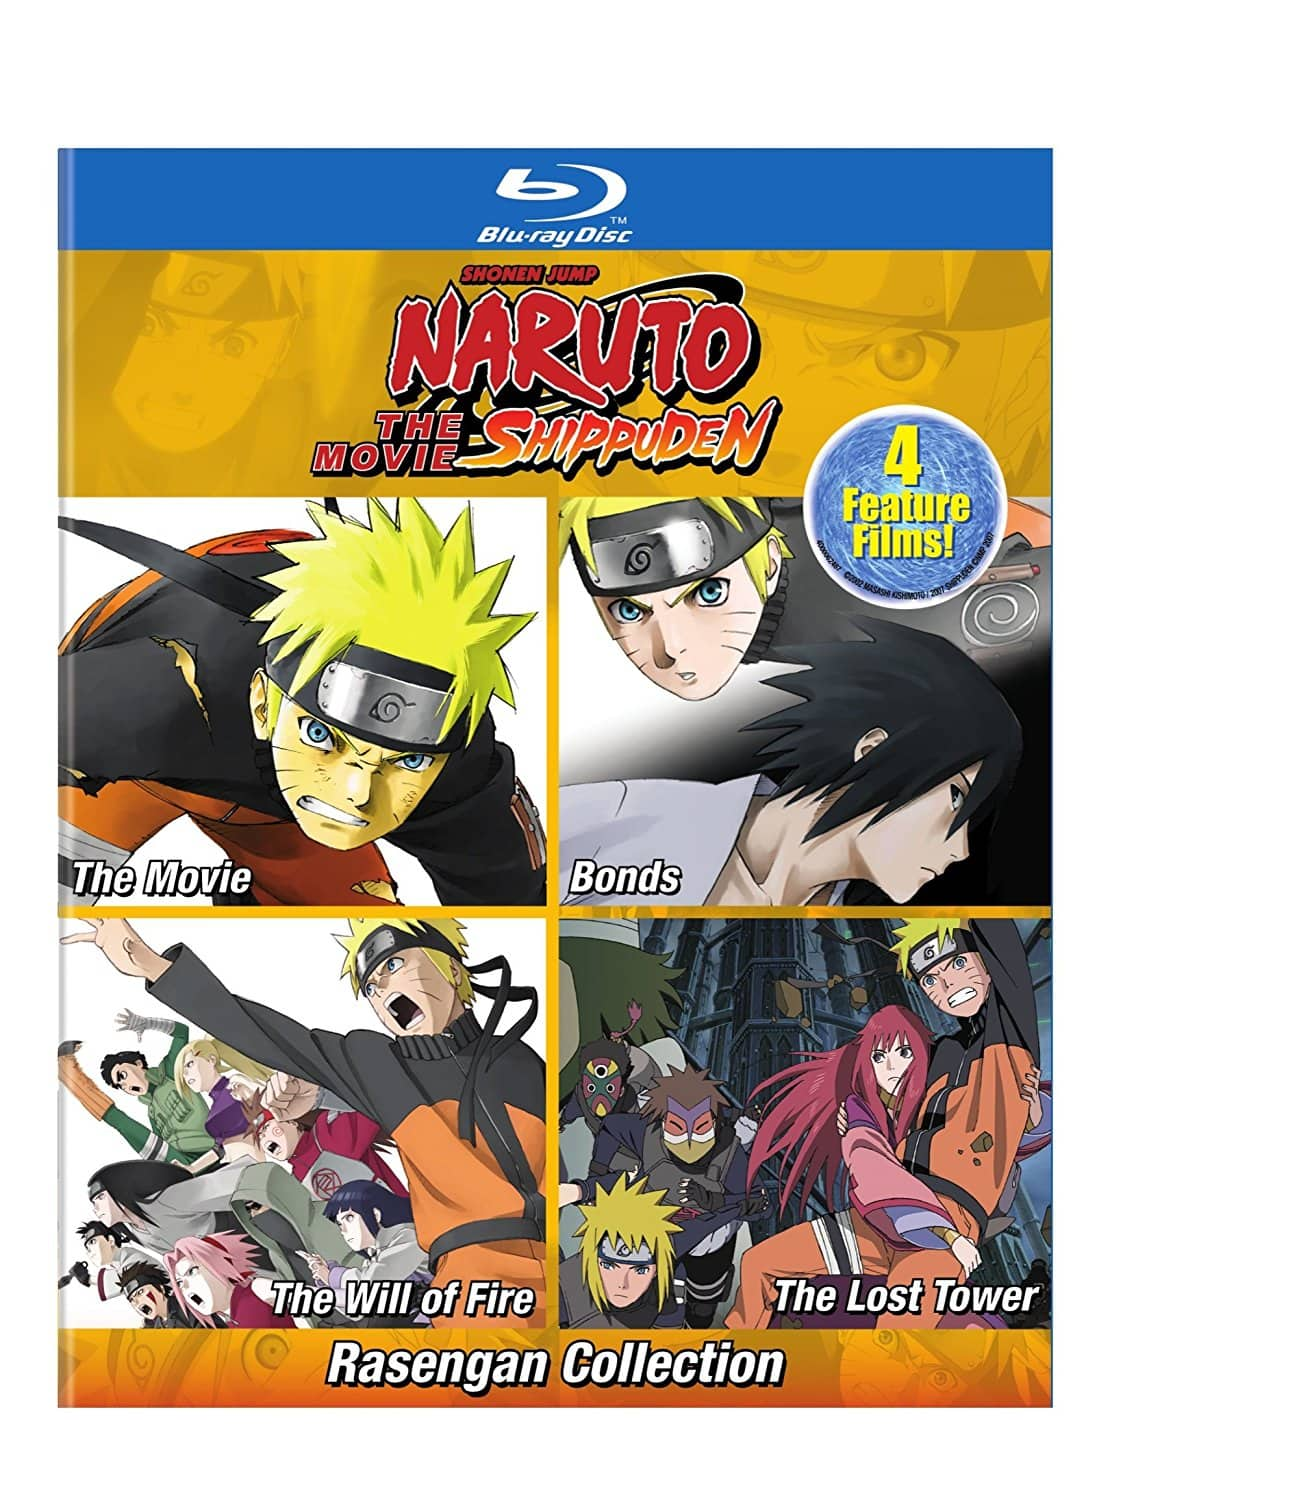 Naruto Shippuden: The Rasengan 4-Films Collection Pre-Order